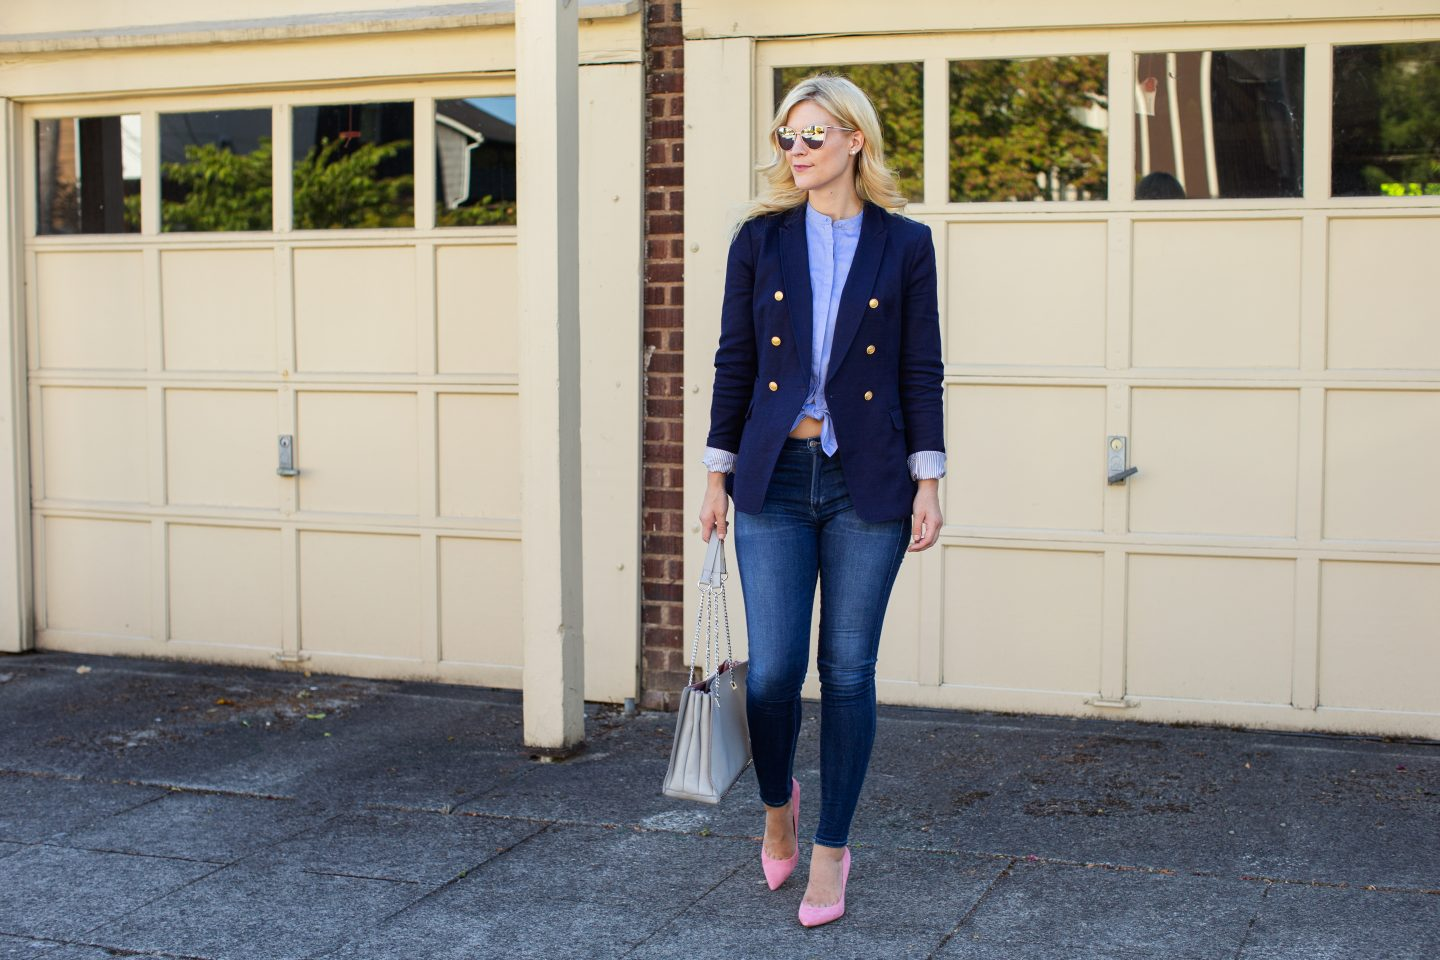 Top Seattle career blogger, Whit Wanders, shares her thoughts about Leaving the Corporate World